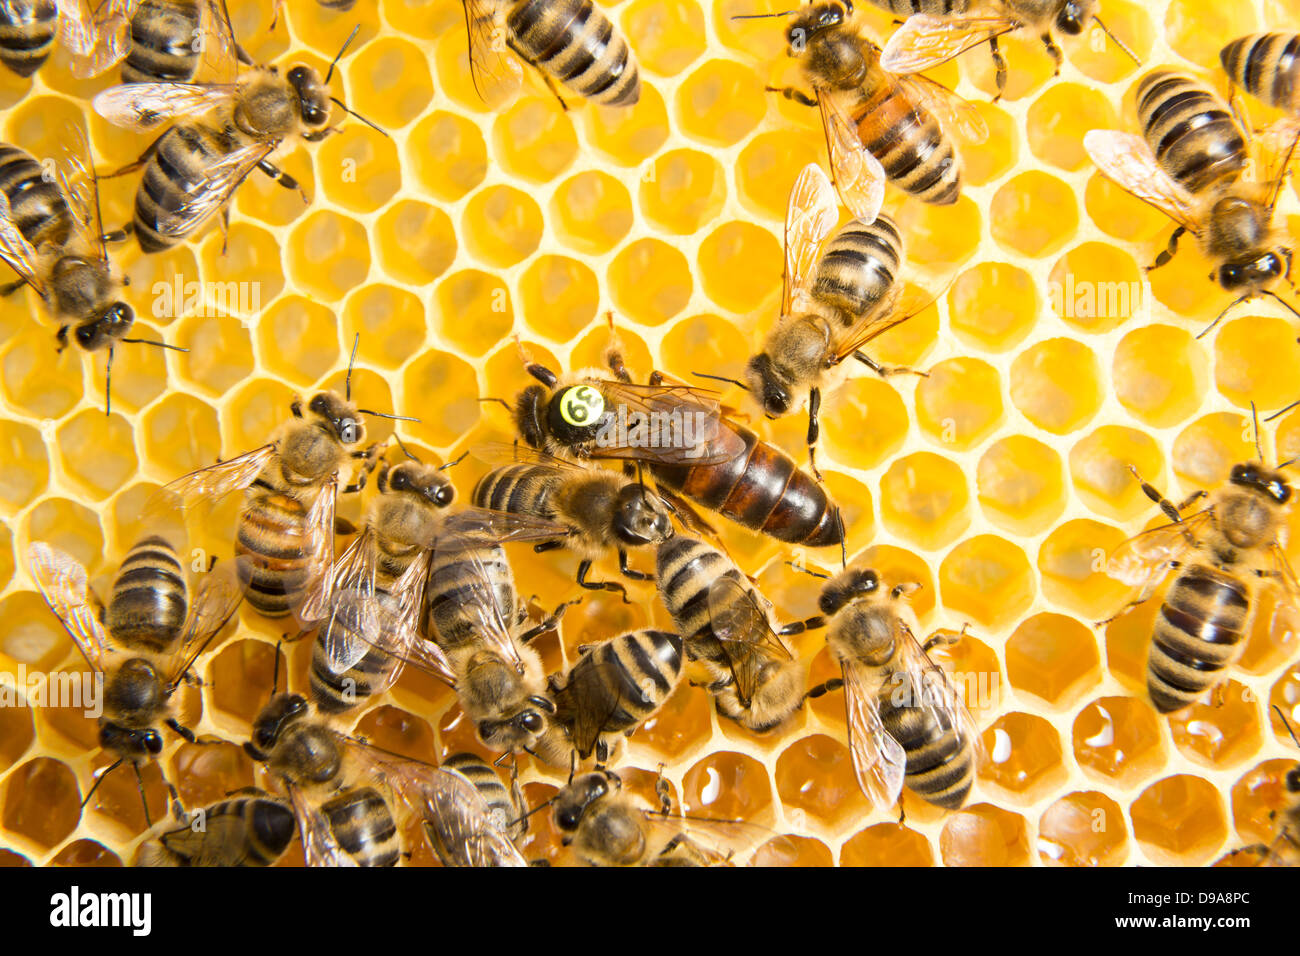 Queen bee in a beehive laying eggs supported by worker bees - Stock Image